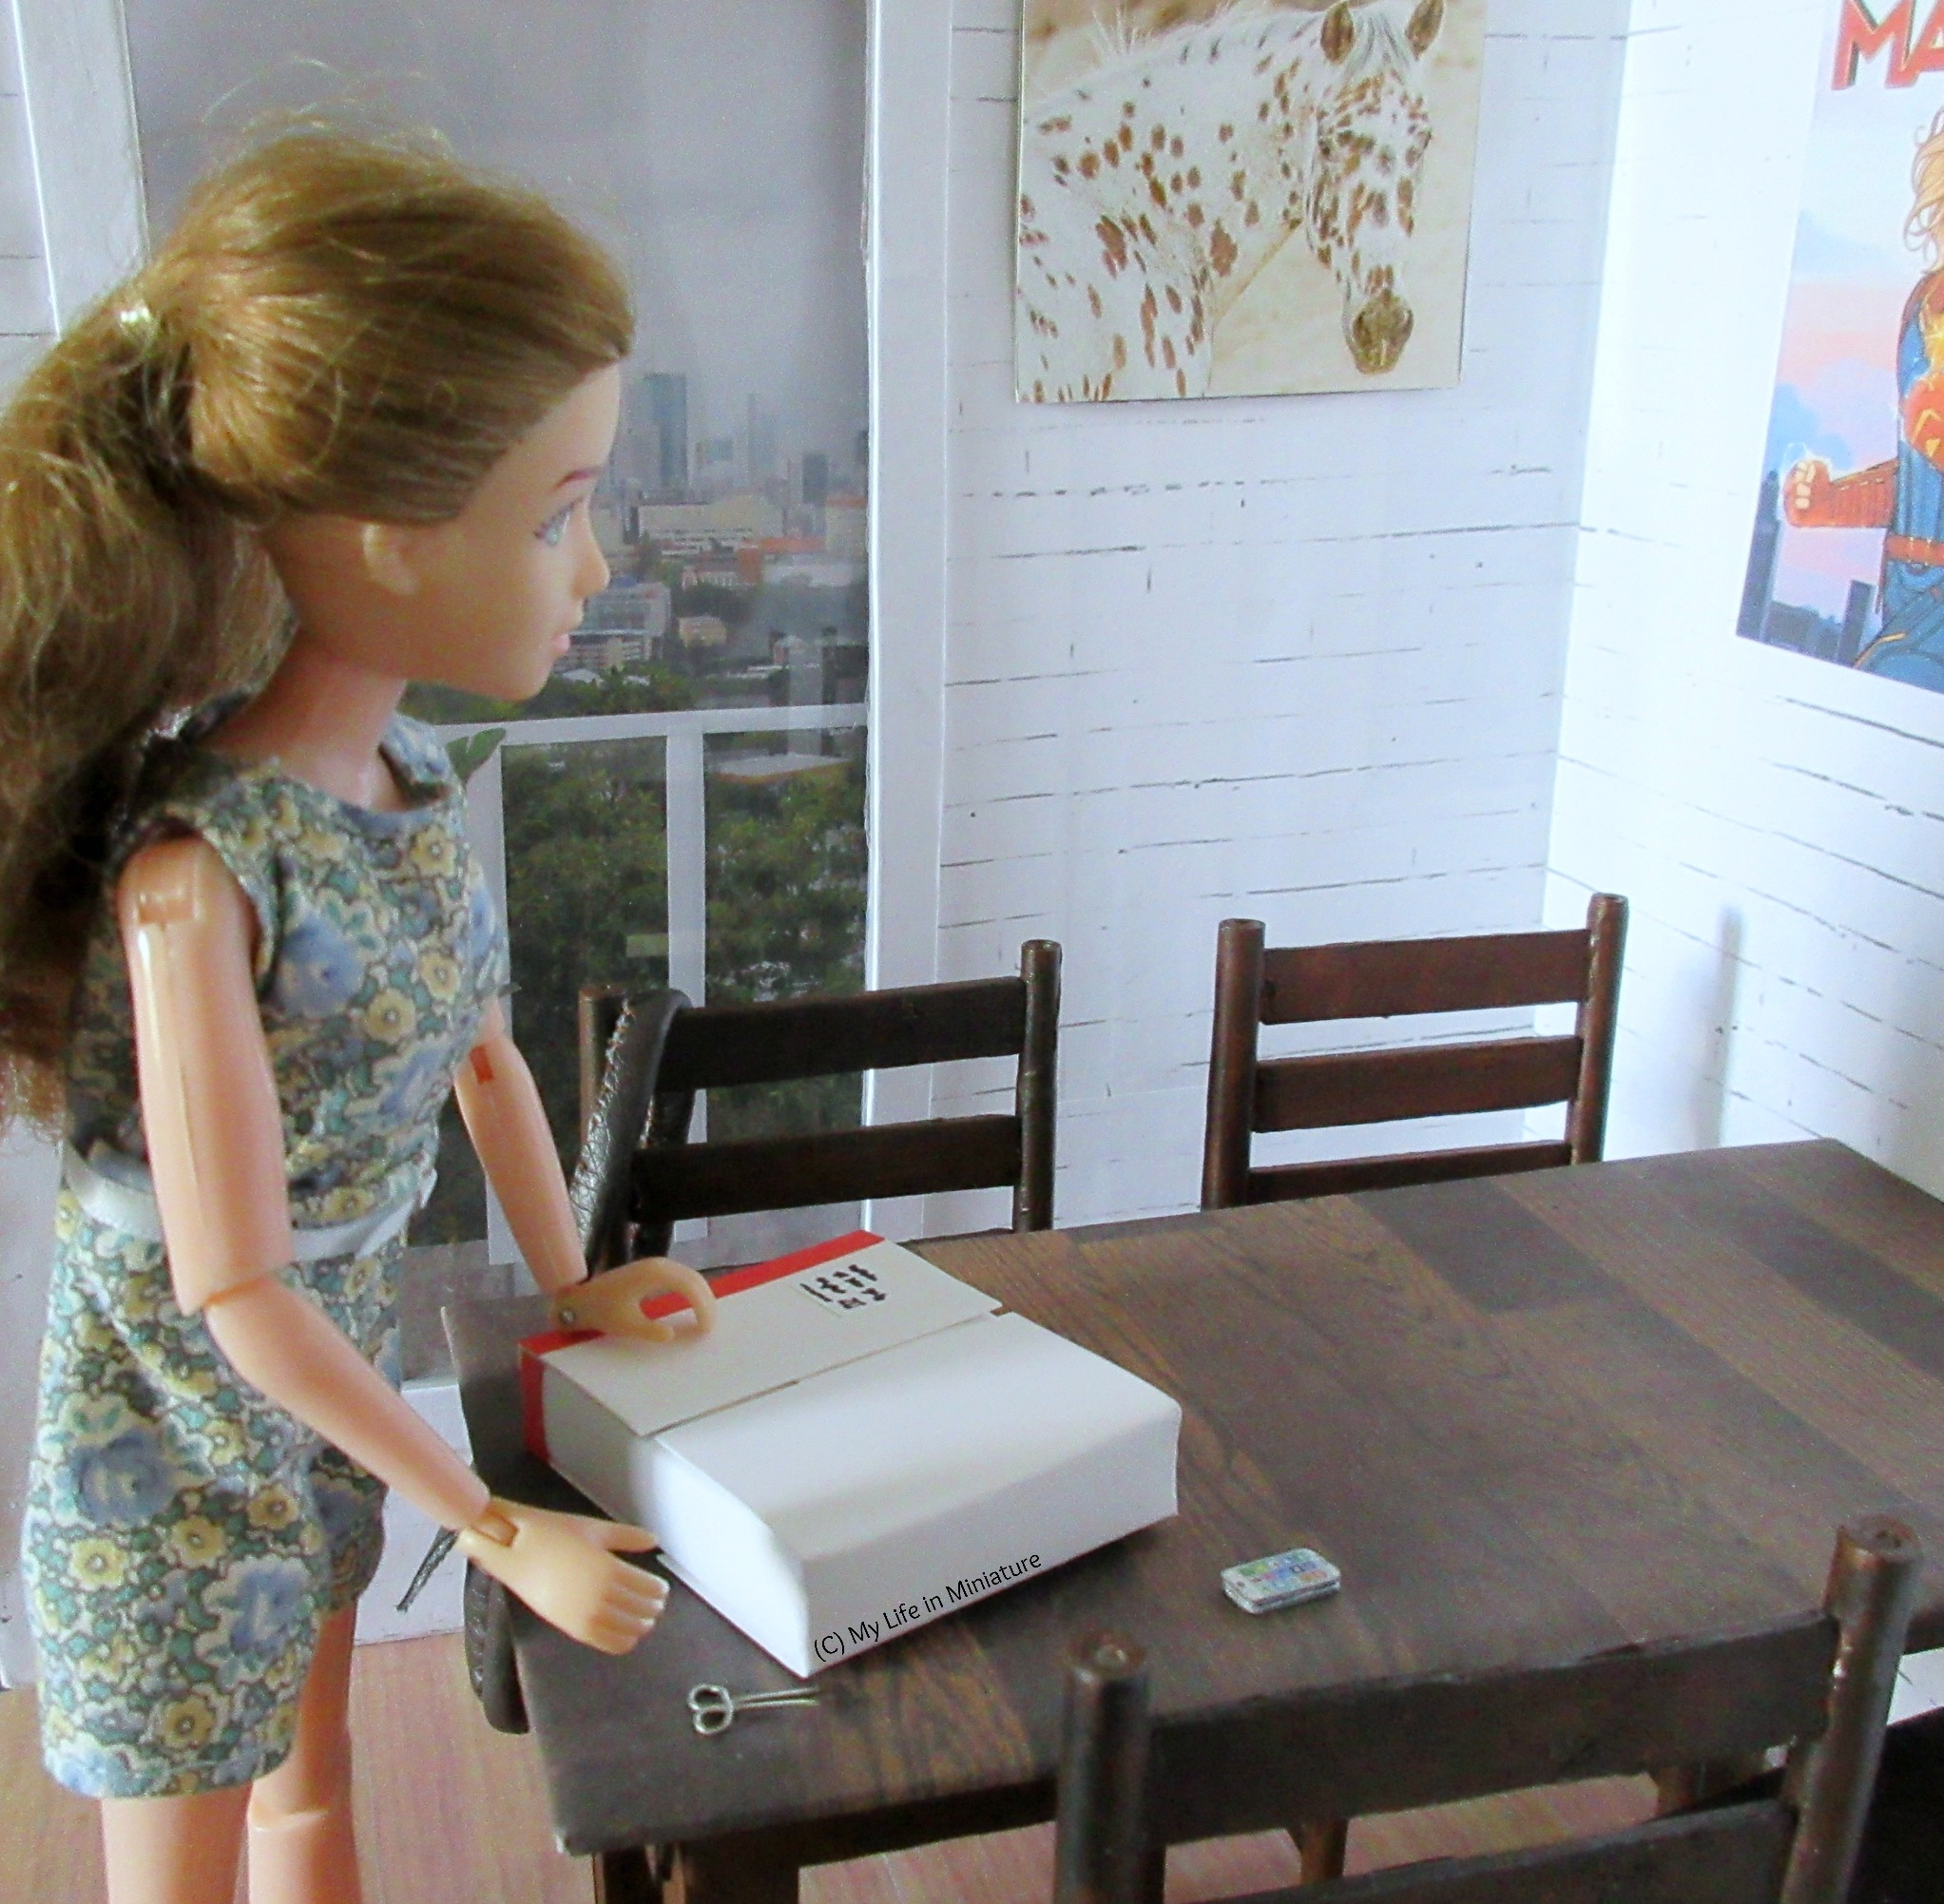 Sarah is looking down at the parcel on her table, trying to remember something. Scissors and her mobile phone are also on the table, and her bag is over the back of a chair.